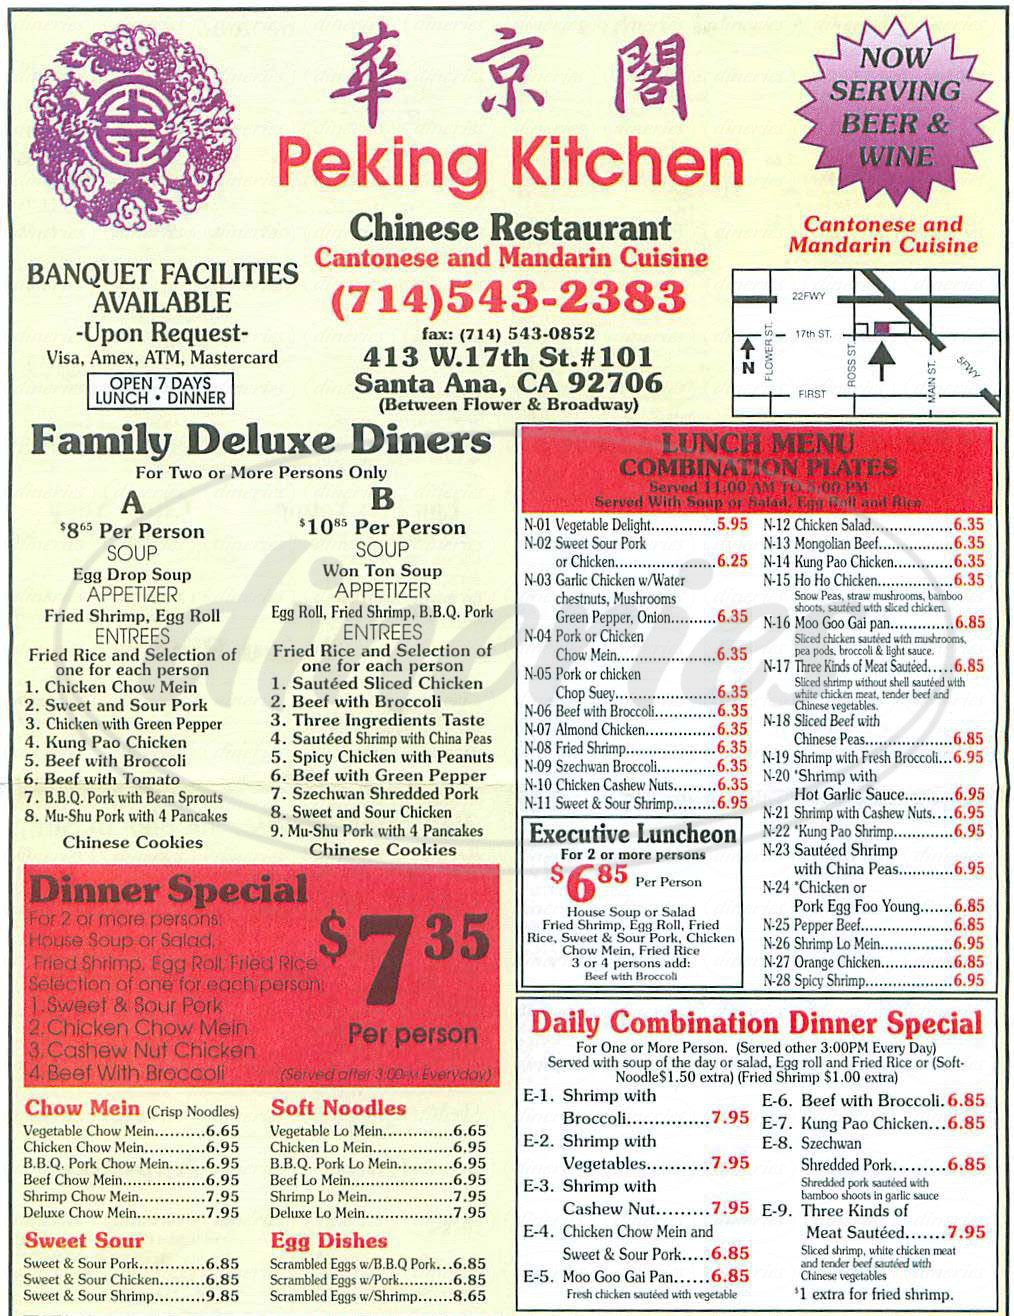 Peking Kitchen Menu Santa Ana Dineries